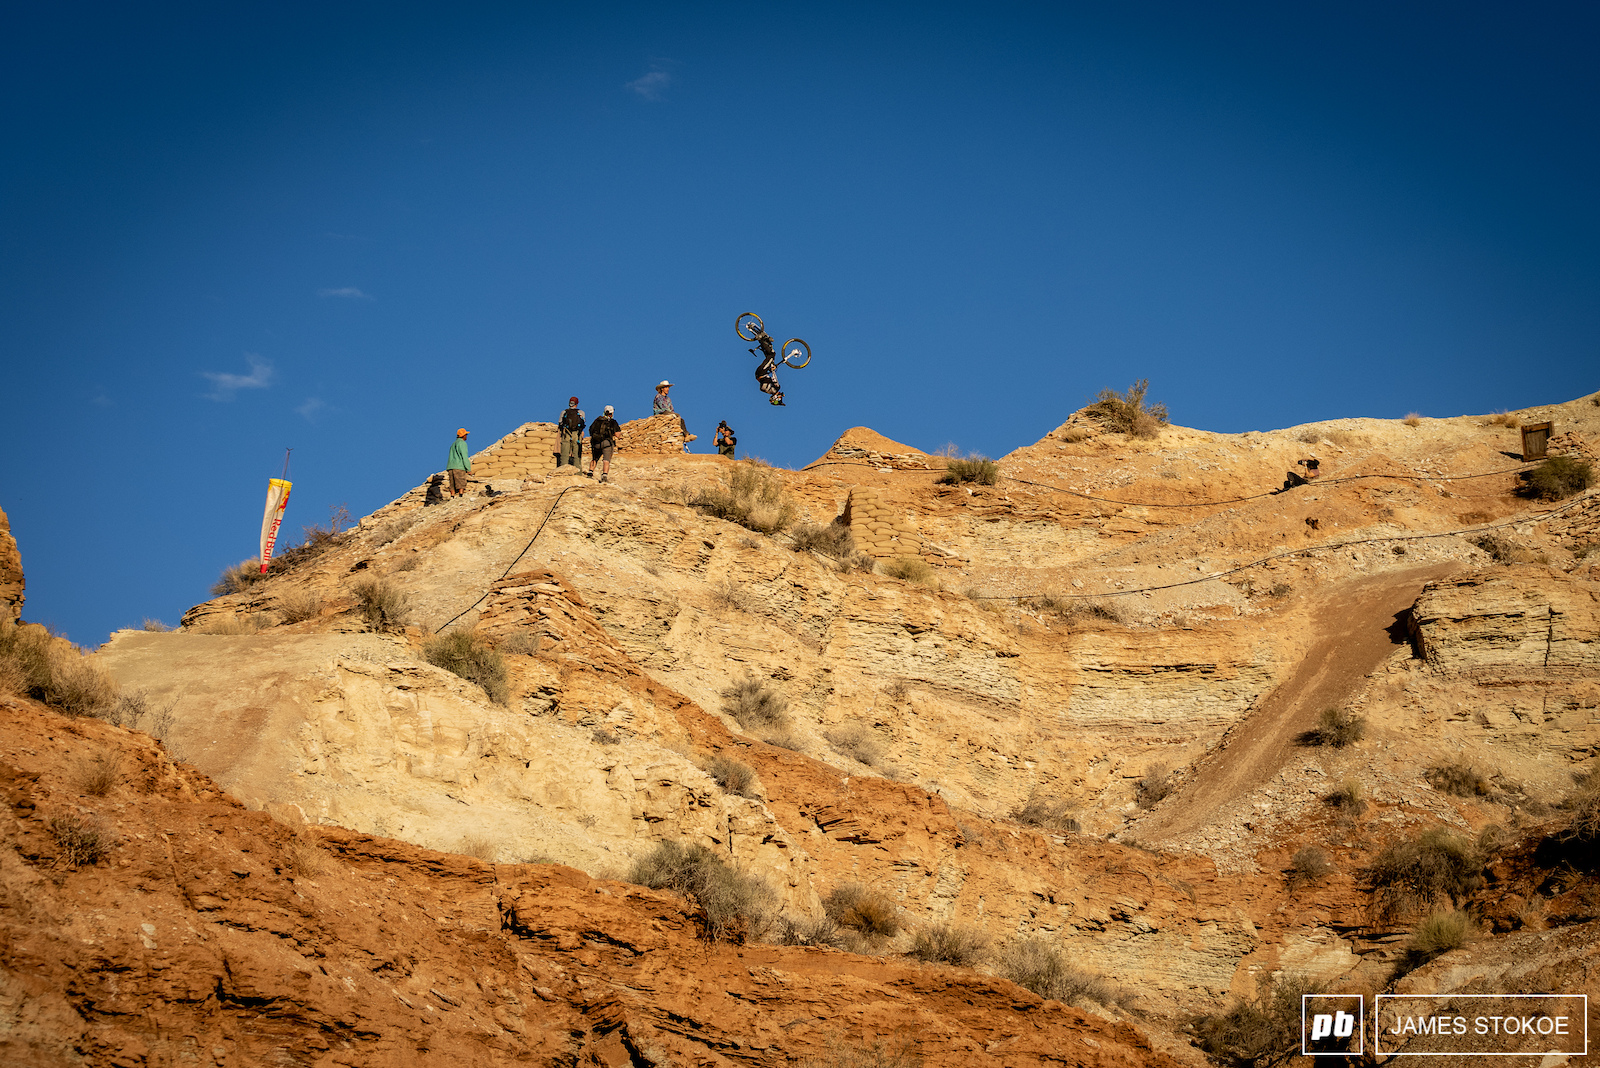 Cam Zink flipping his double on the ridge line.